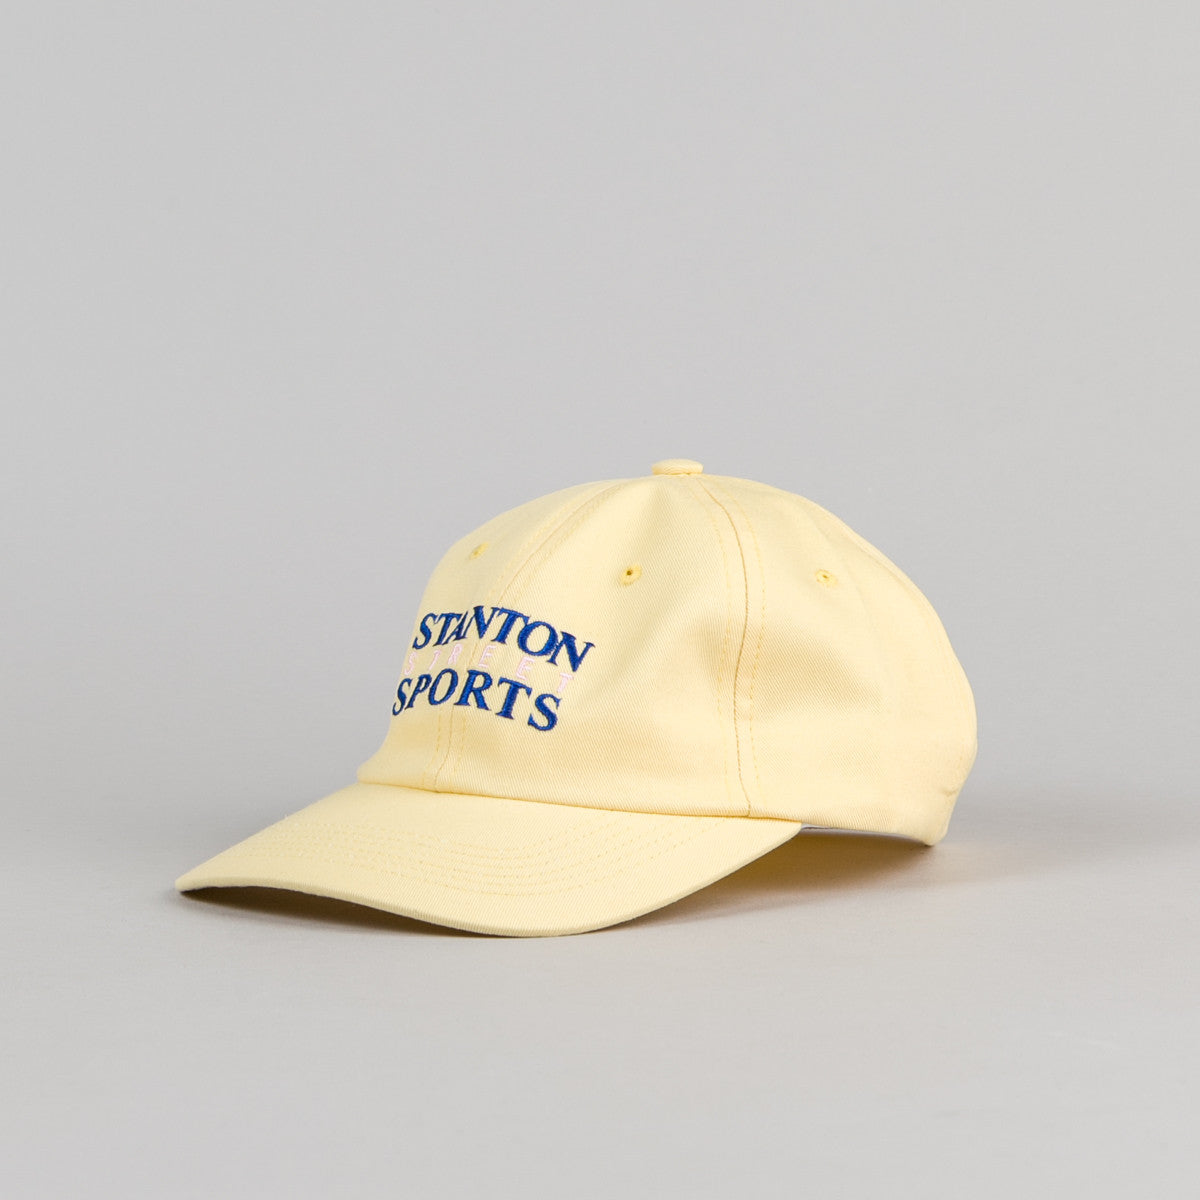 Stanton Street Sports Cap - Yellow